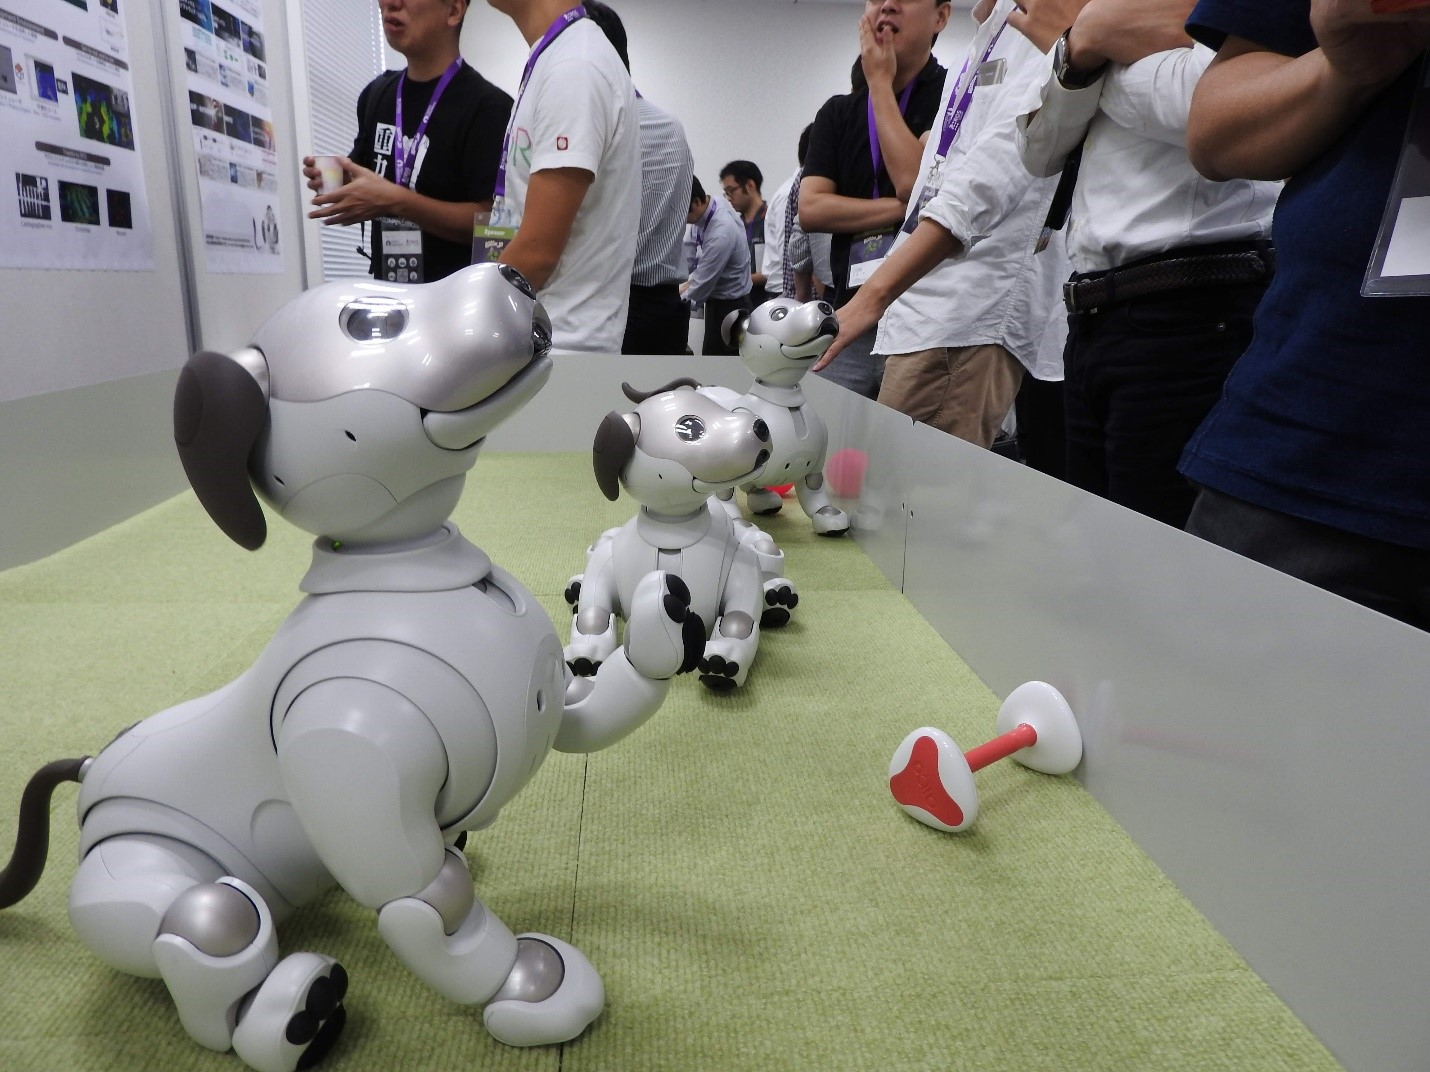 FIg 6.  The adorable Aibo on the demonstration booth by Sony Corporation